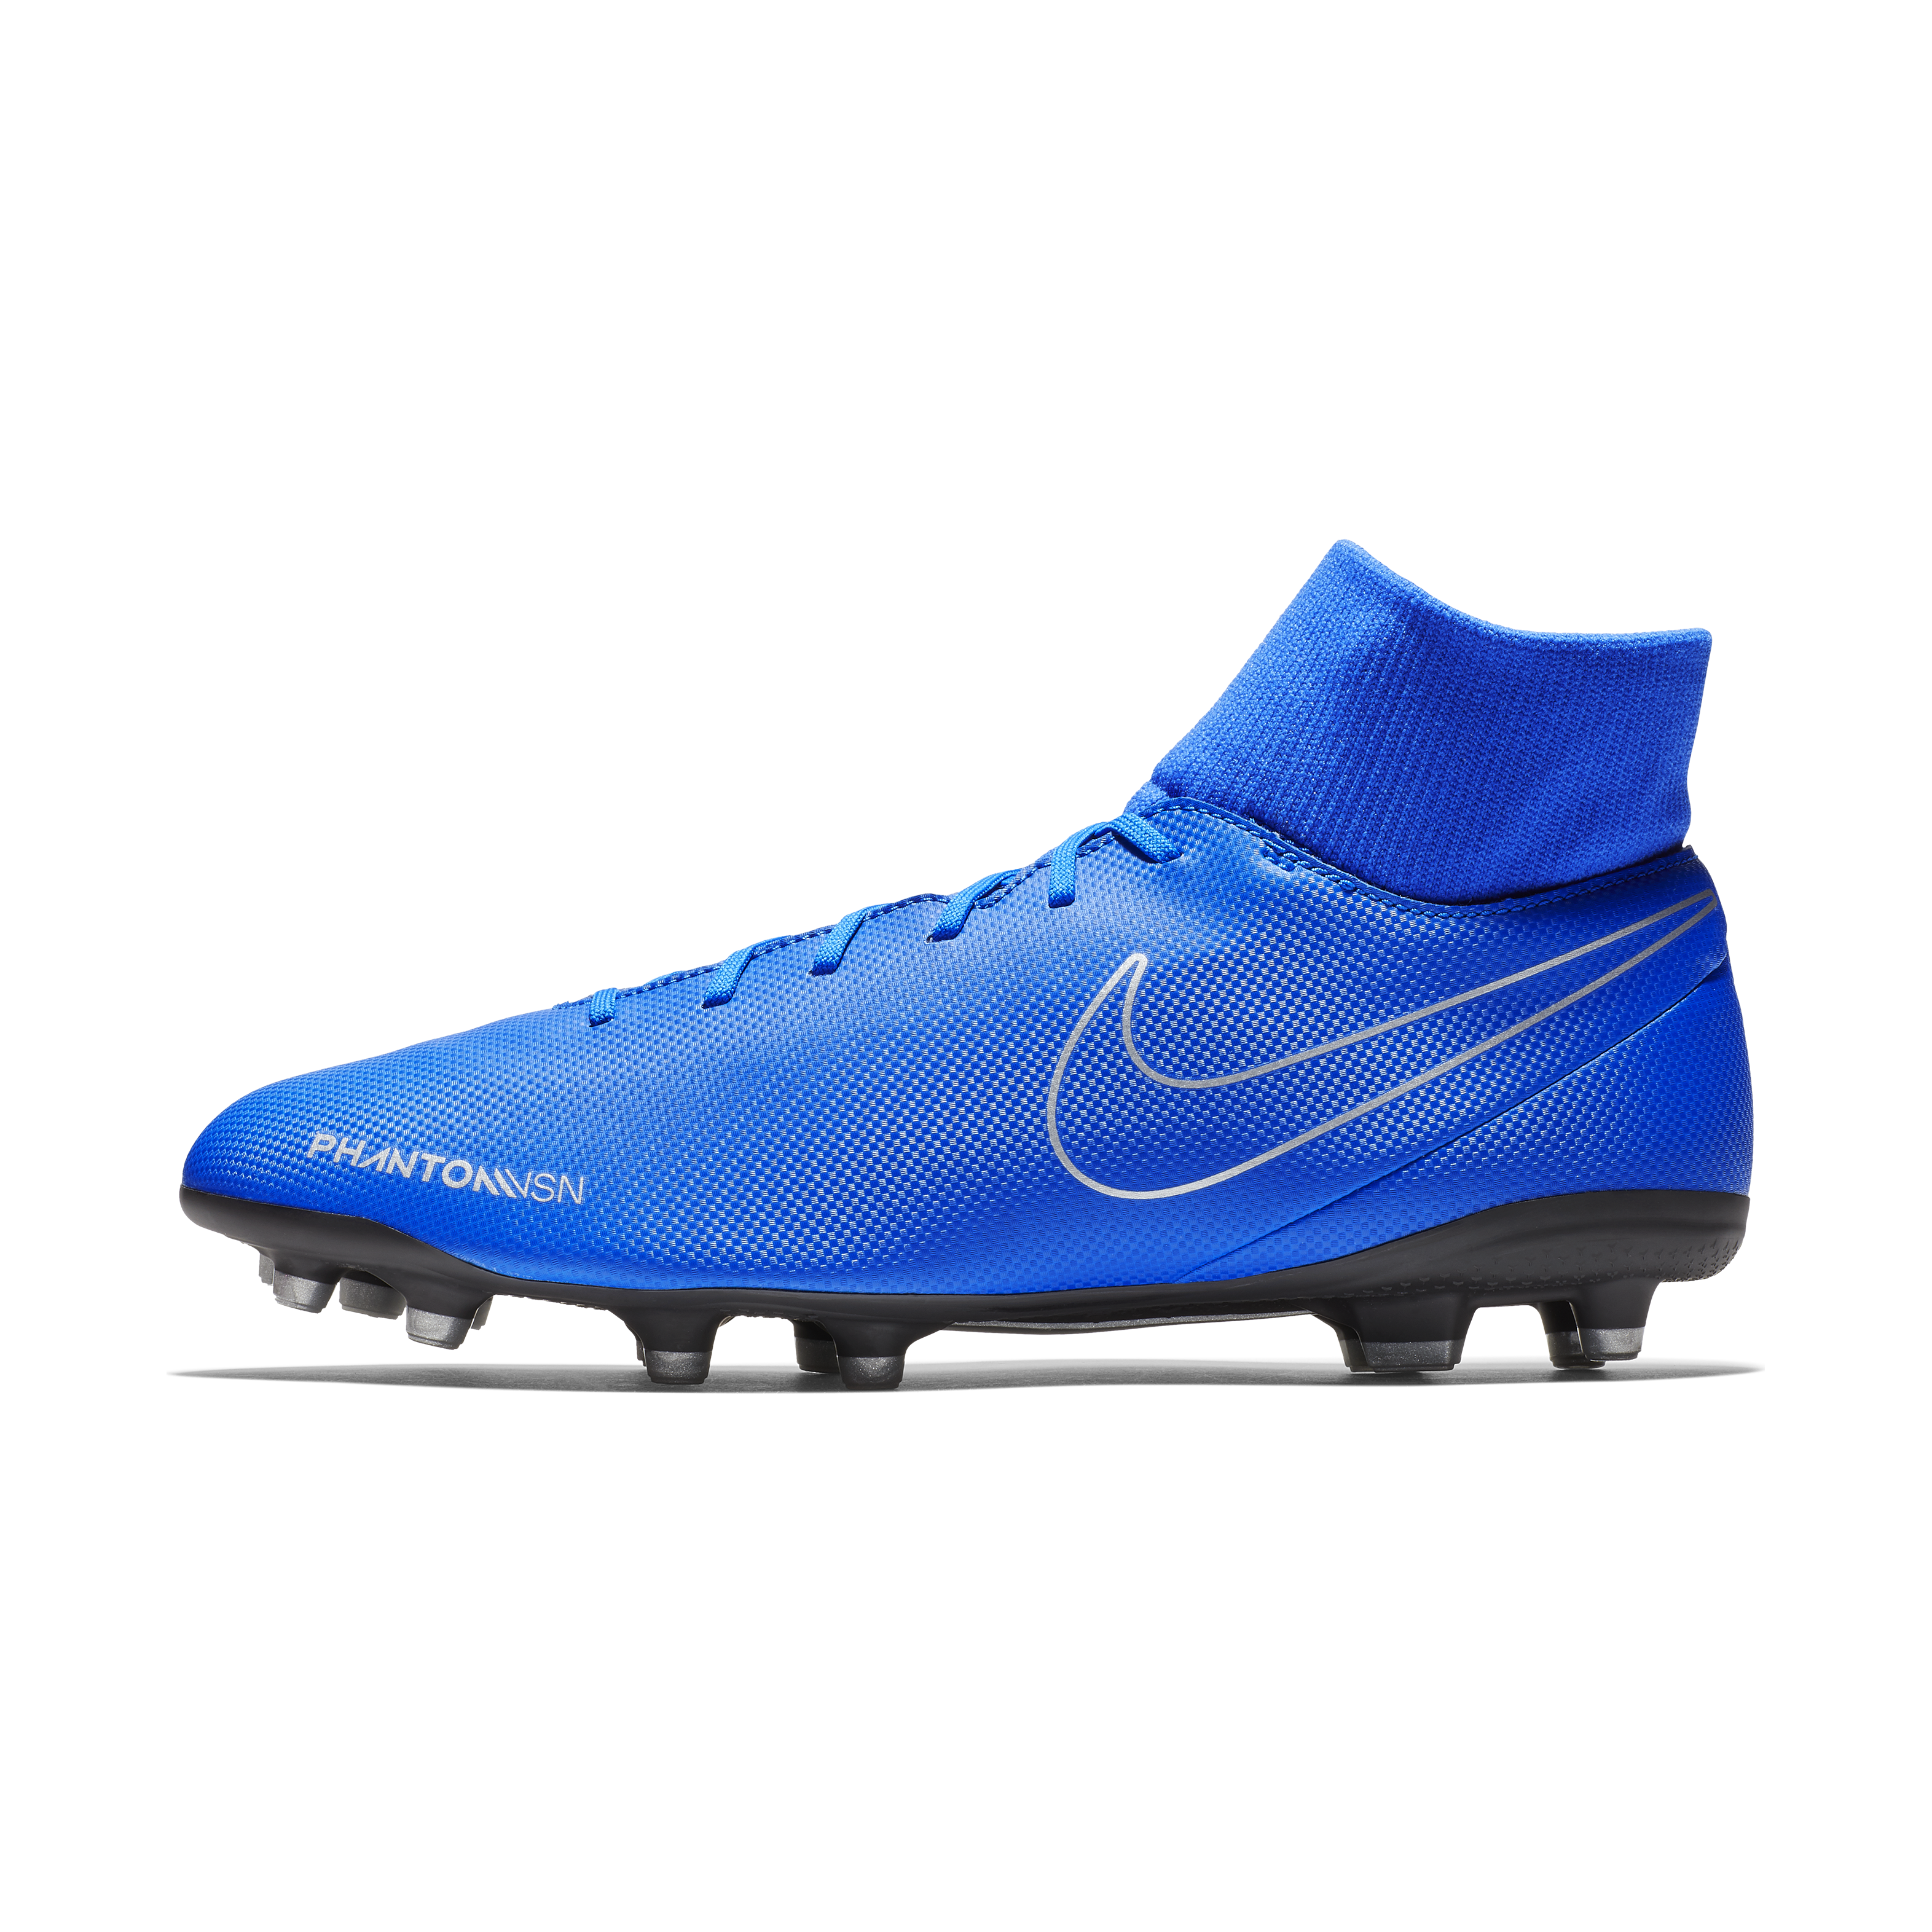 4d292316f NIKE PHANTOM VSN CLUB DF FG MG MENS - Poobie Naidoos